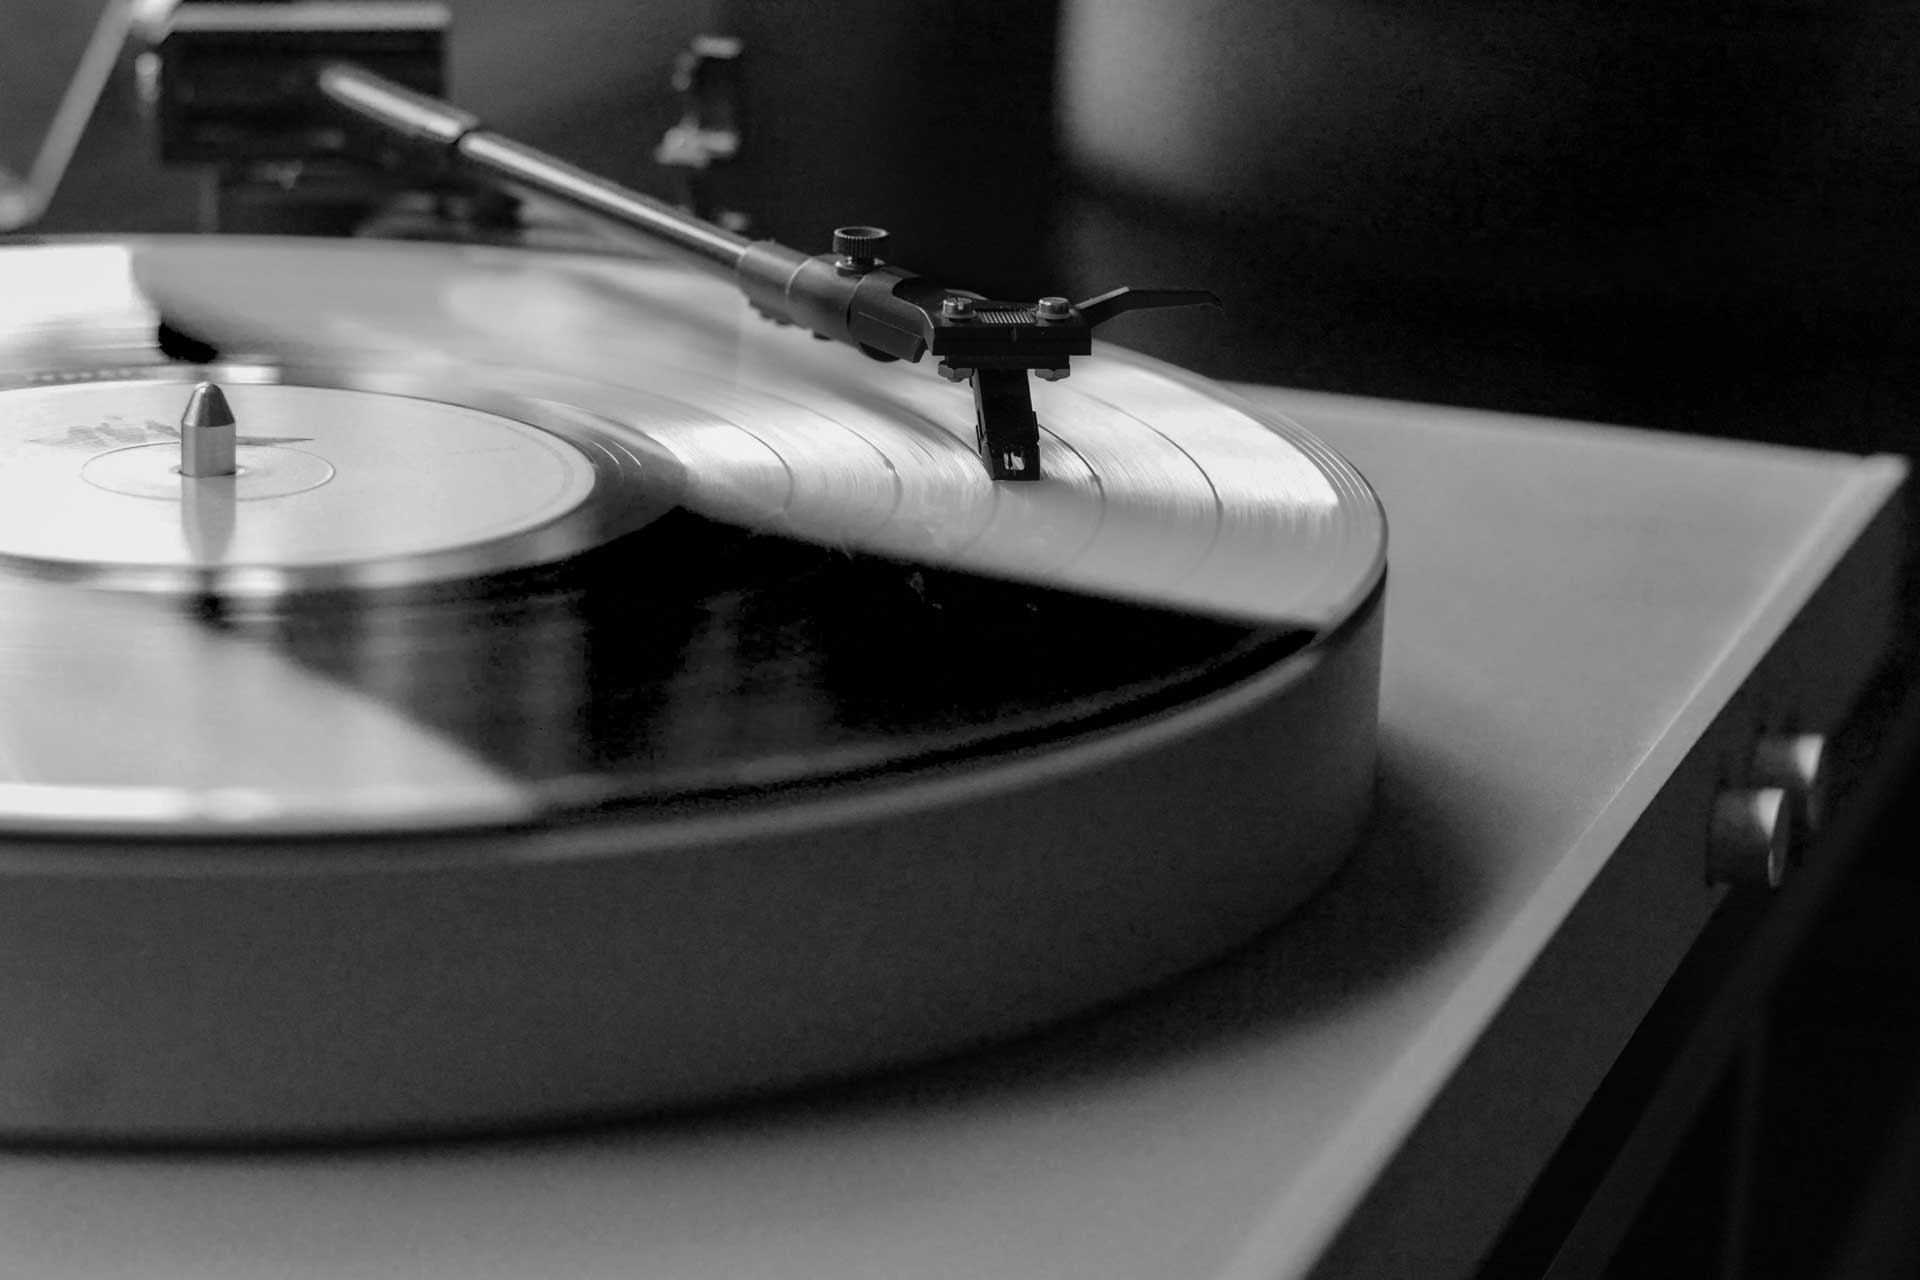 vinile - Photo by Lee Campbell on Unsplash